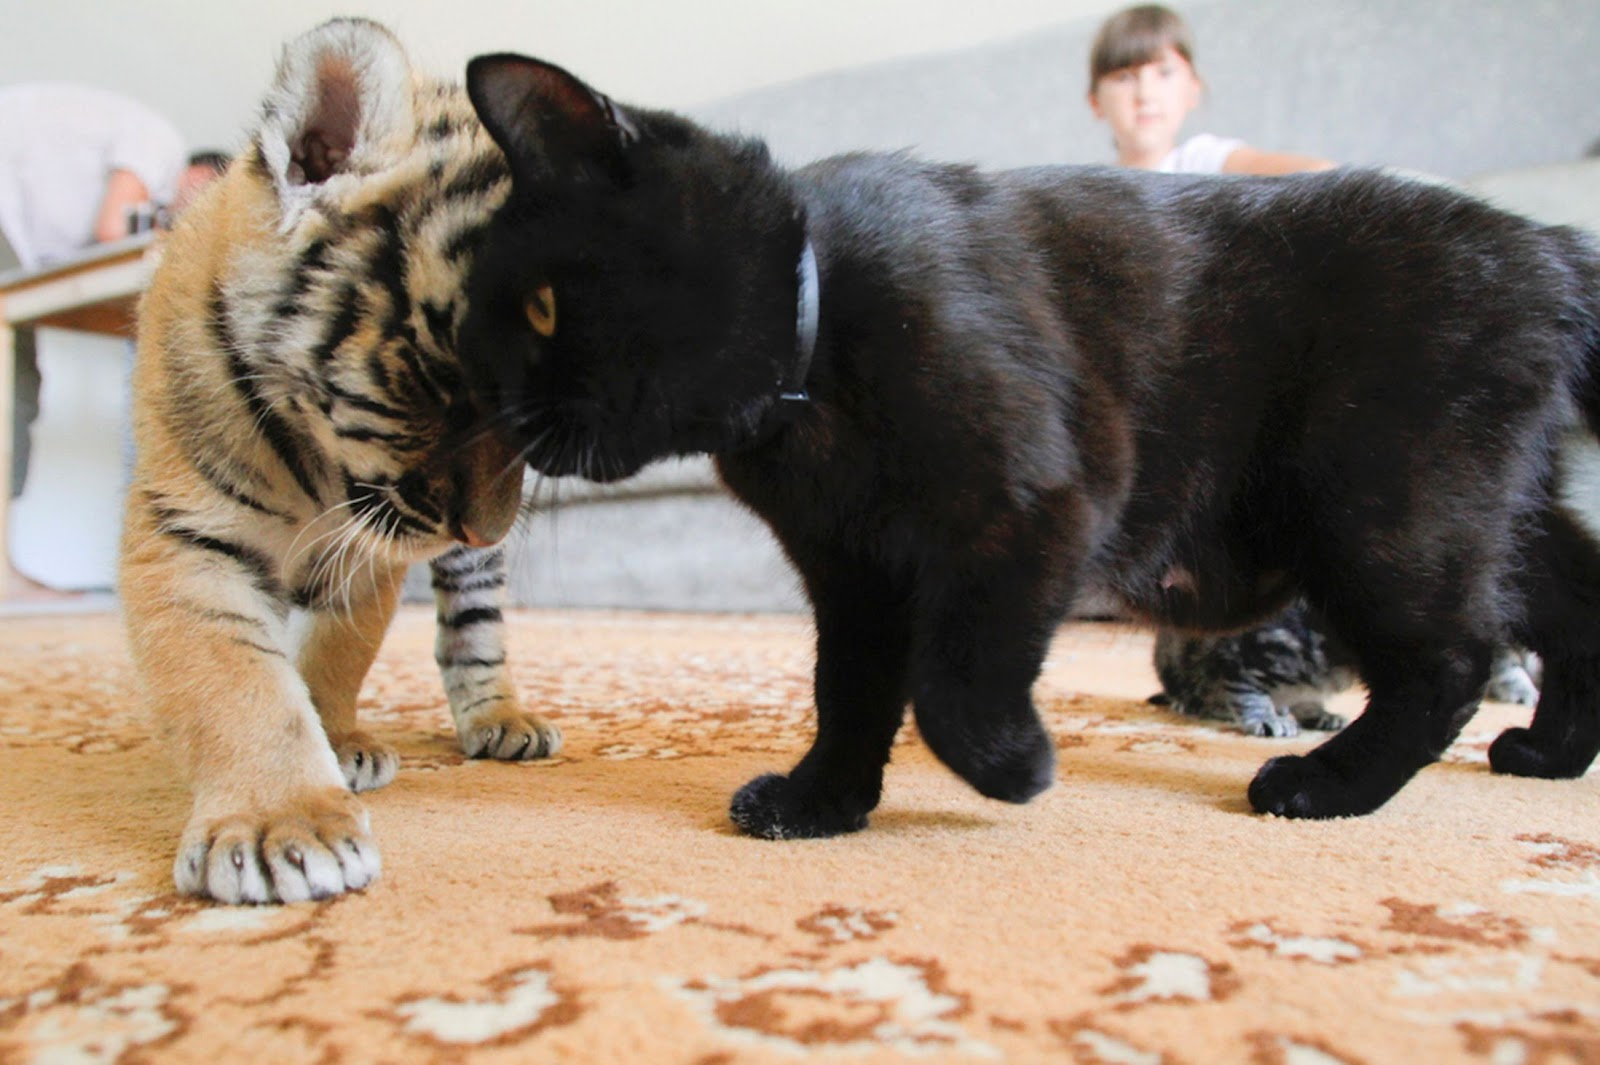 Tiger and cat feline friends